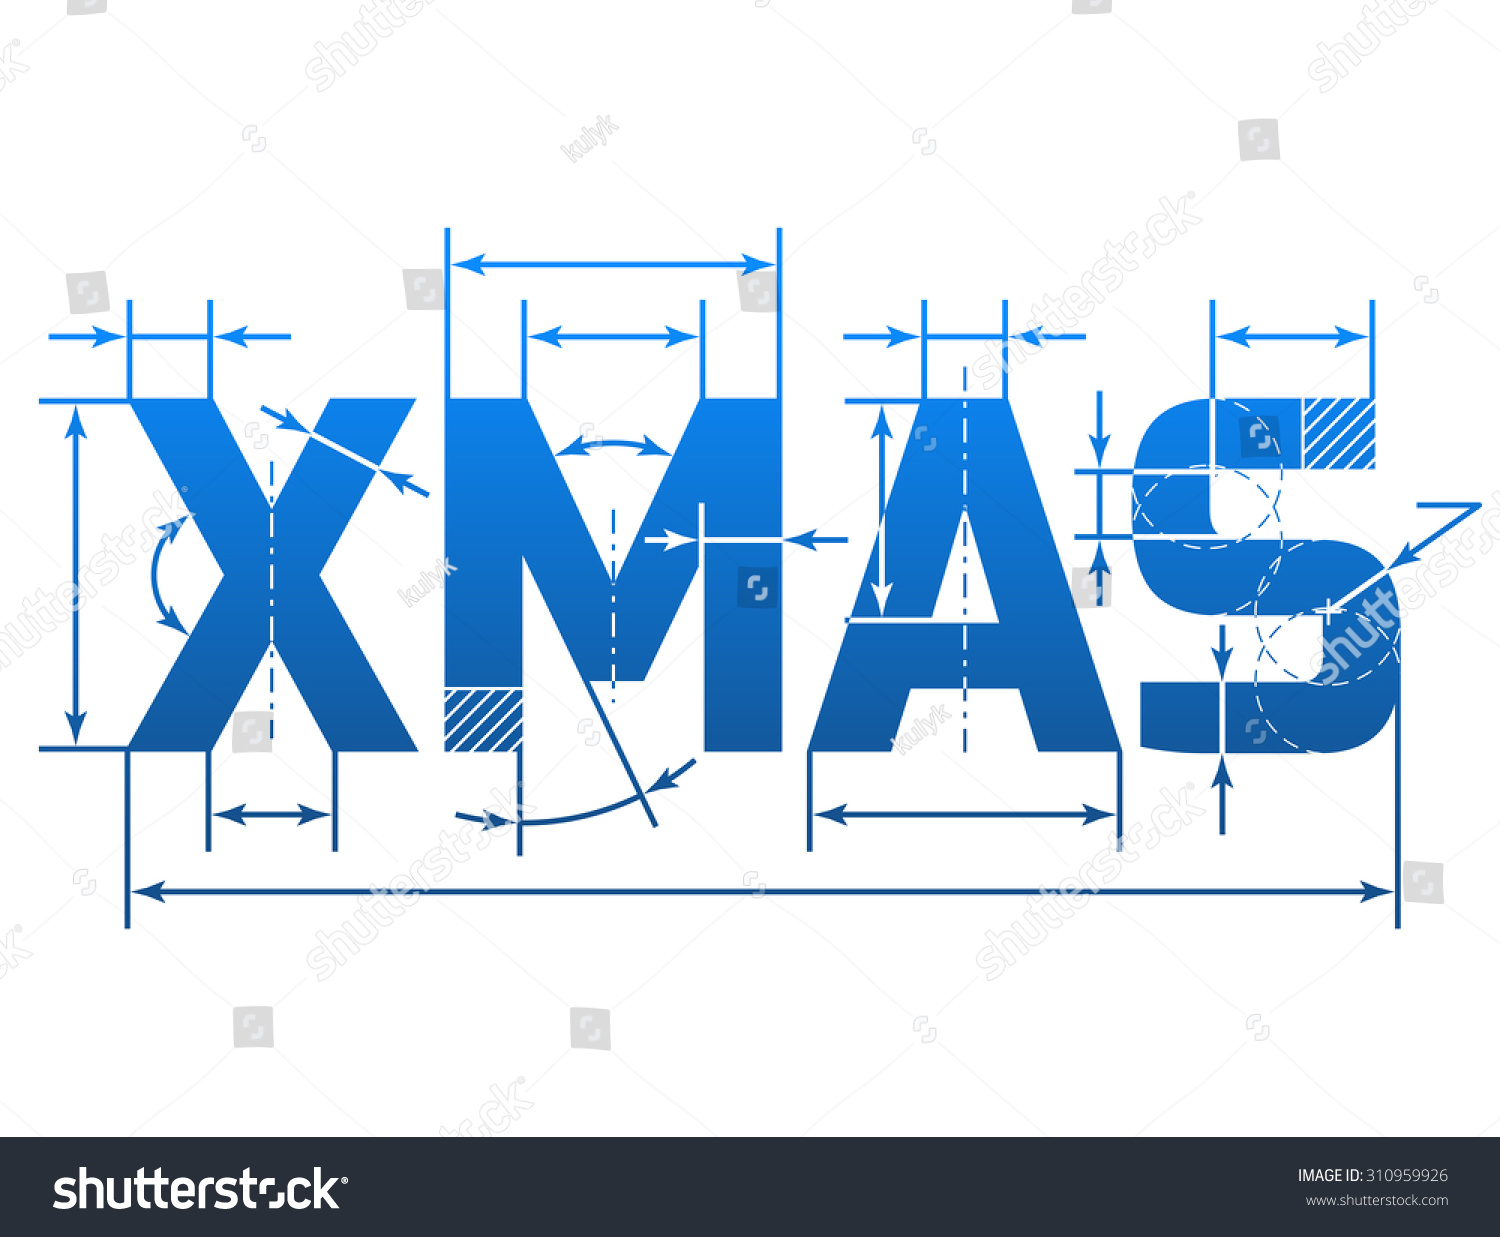 Word xmas dimension lines element blueprint stock vector 310959926 word xmas dimension lines element blueprint stock vector 310959926 shutterstock malvernweather Gallery